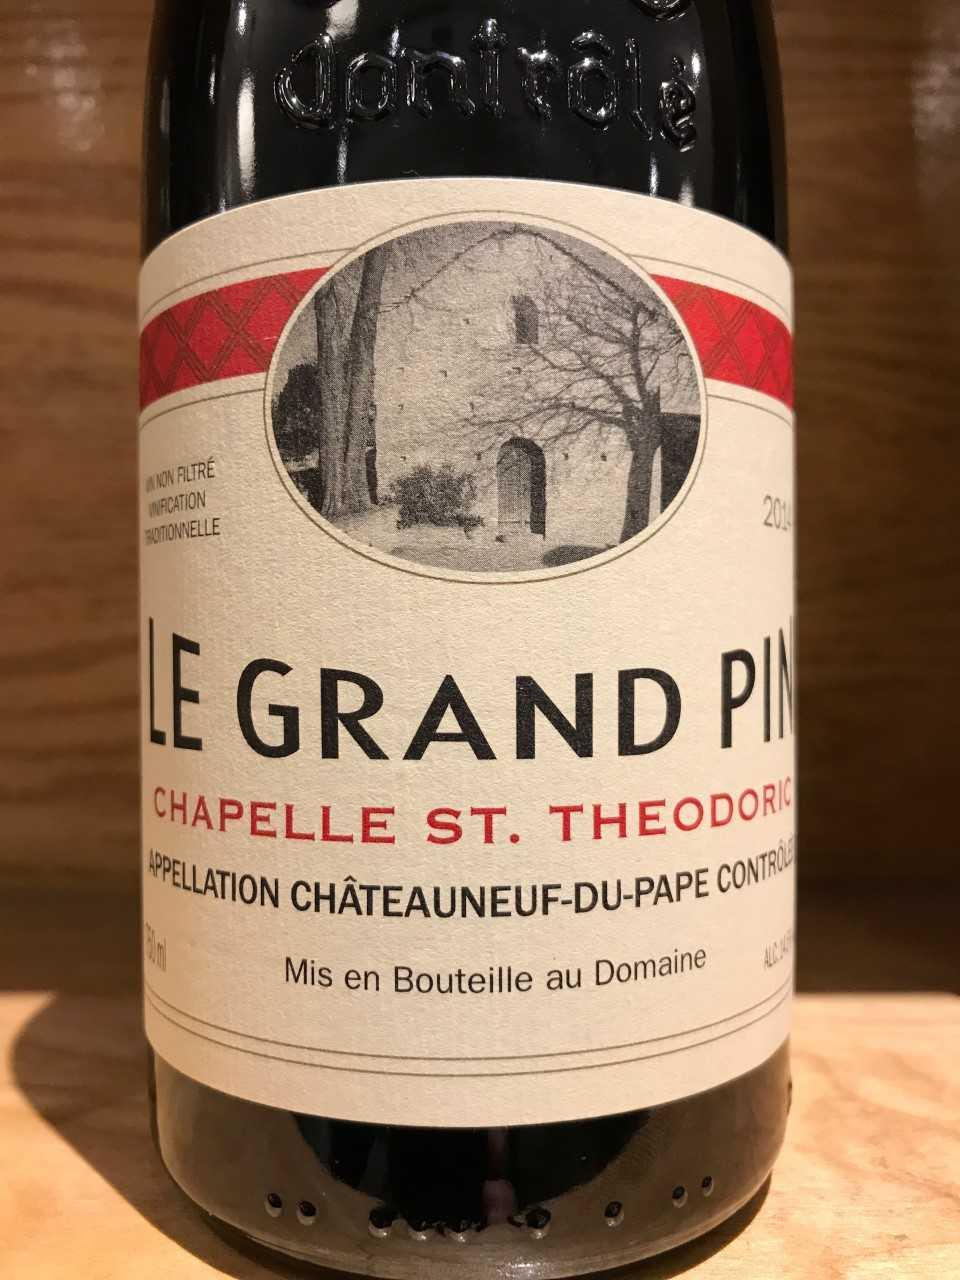 Chapelle St. Theodoric 2012 Châteauneuf du Pape Le Grand Pin